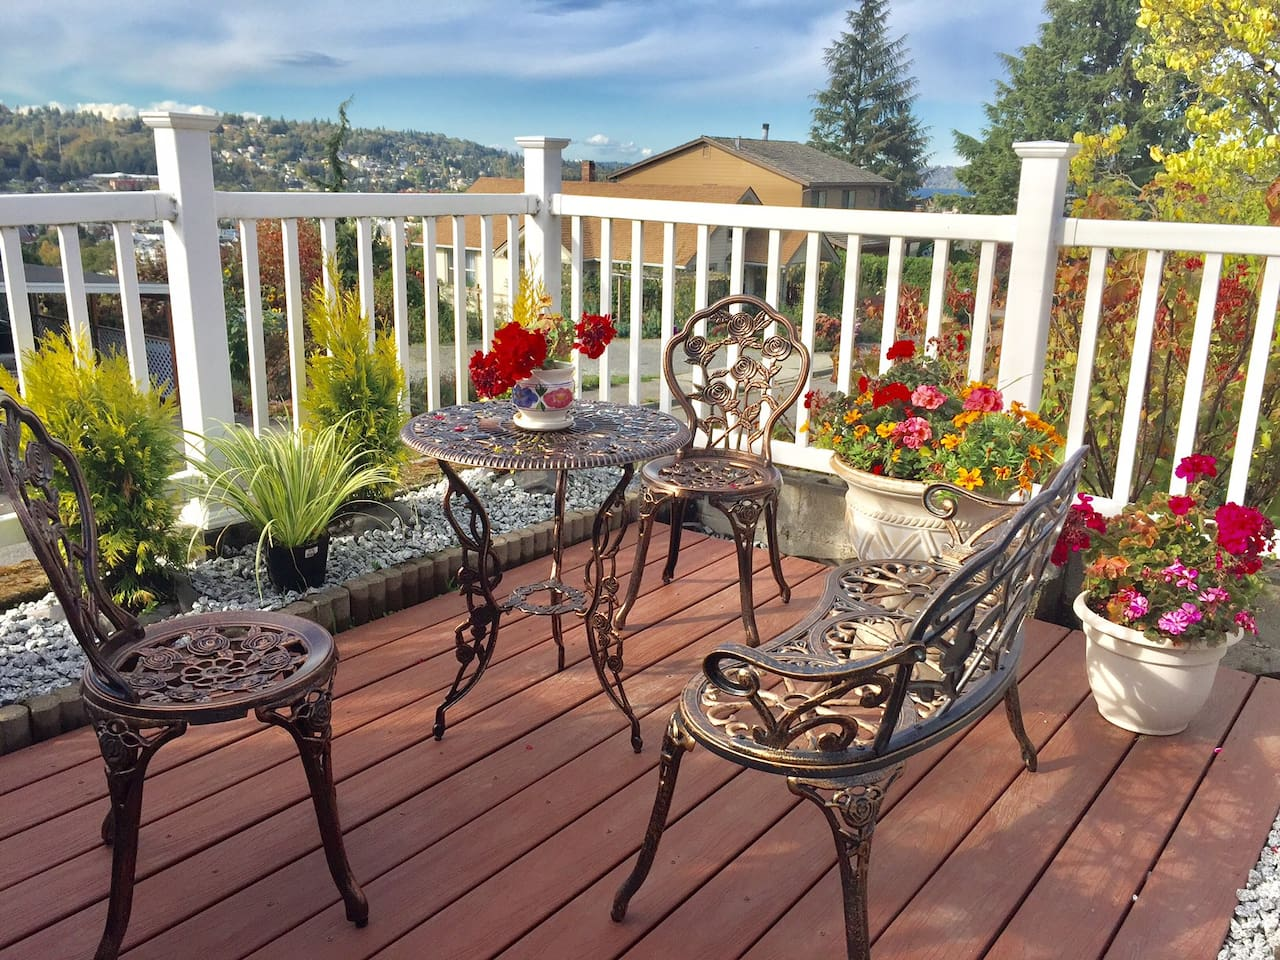 Private patio to enjoy beautiful view. Please enjoy having a breakfast, coffee, and dinner.